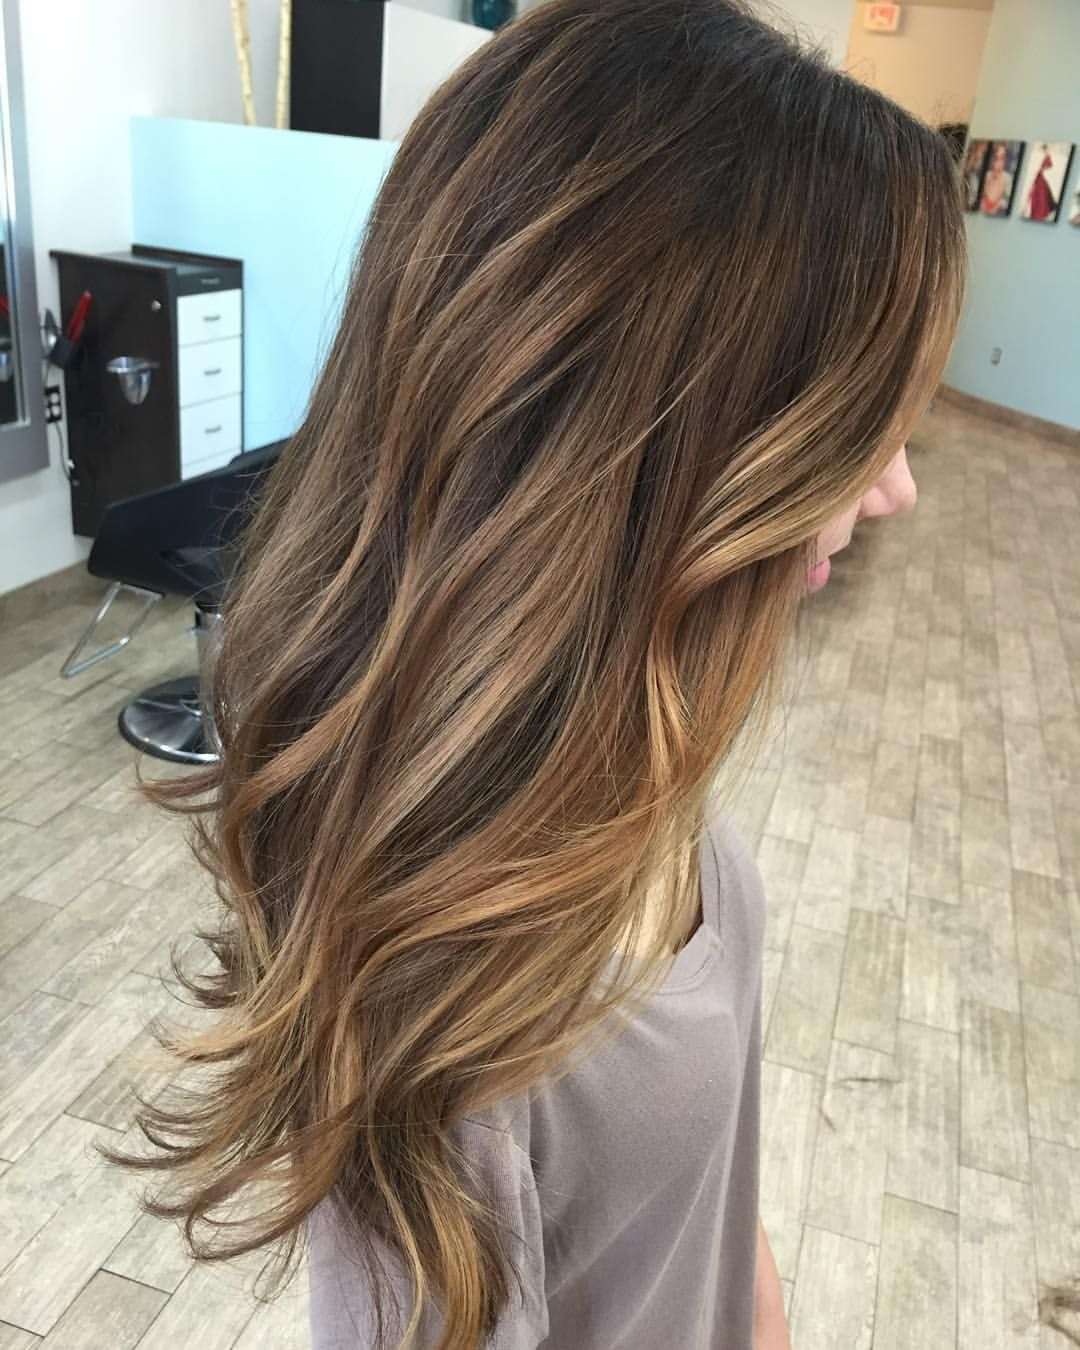 Pin By Veronica Chavez On Beautify Hair Color For Morena Hair Color For Morena Skin Light Hair Color